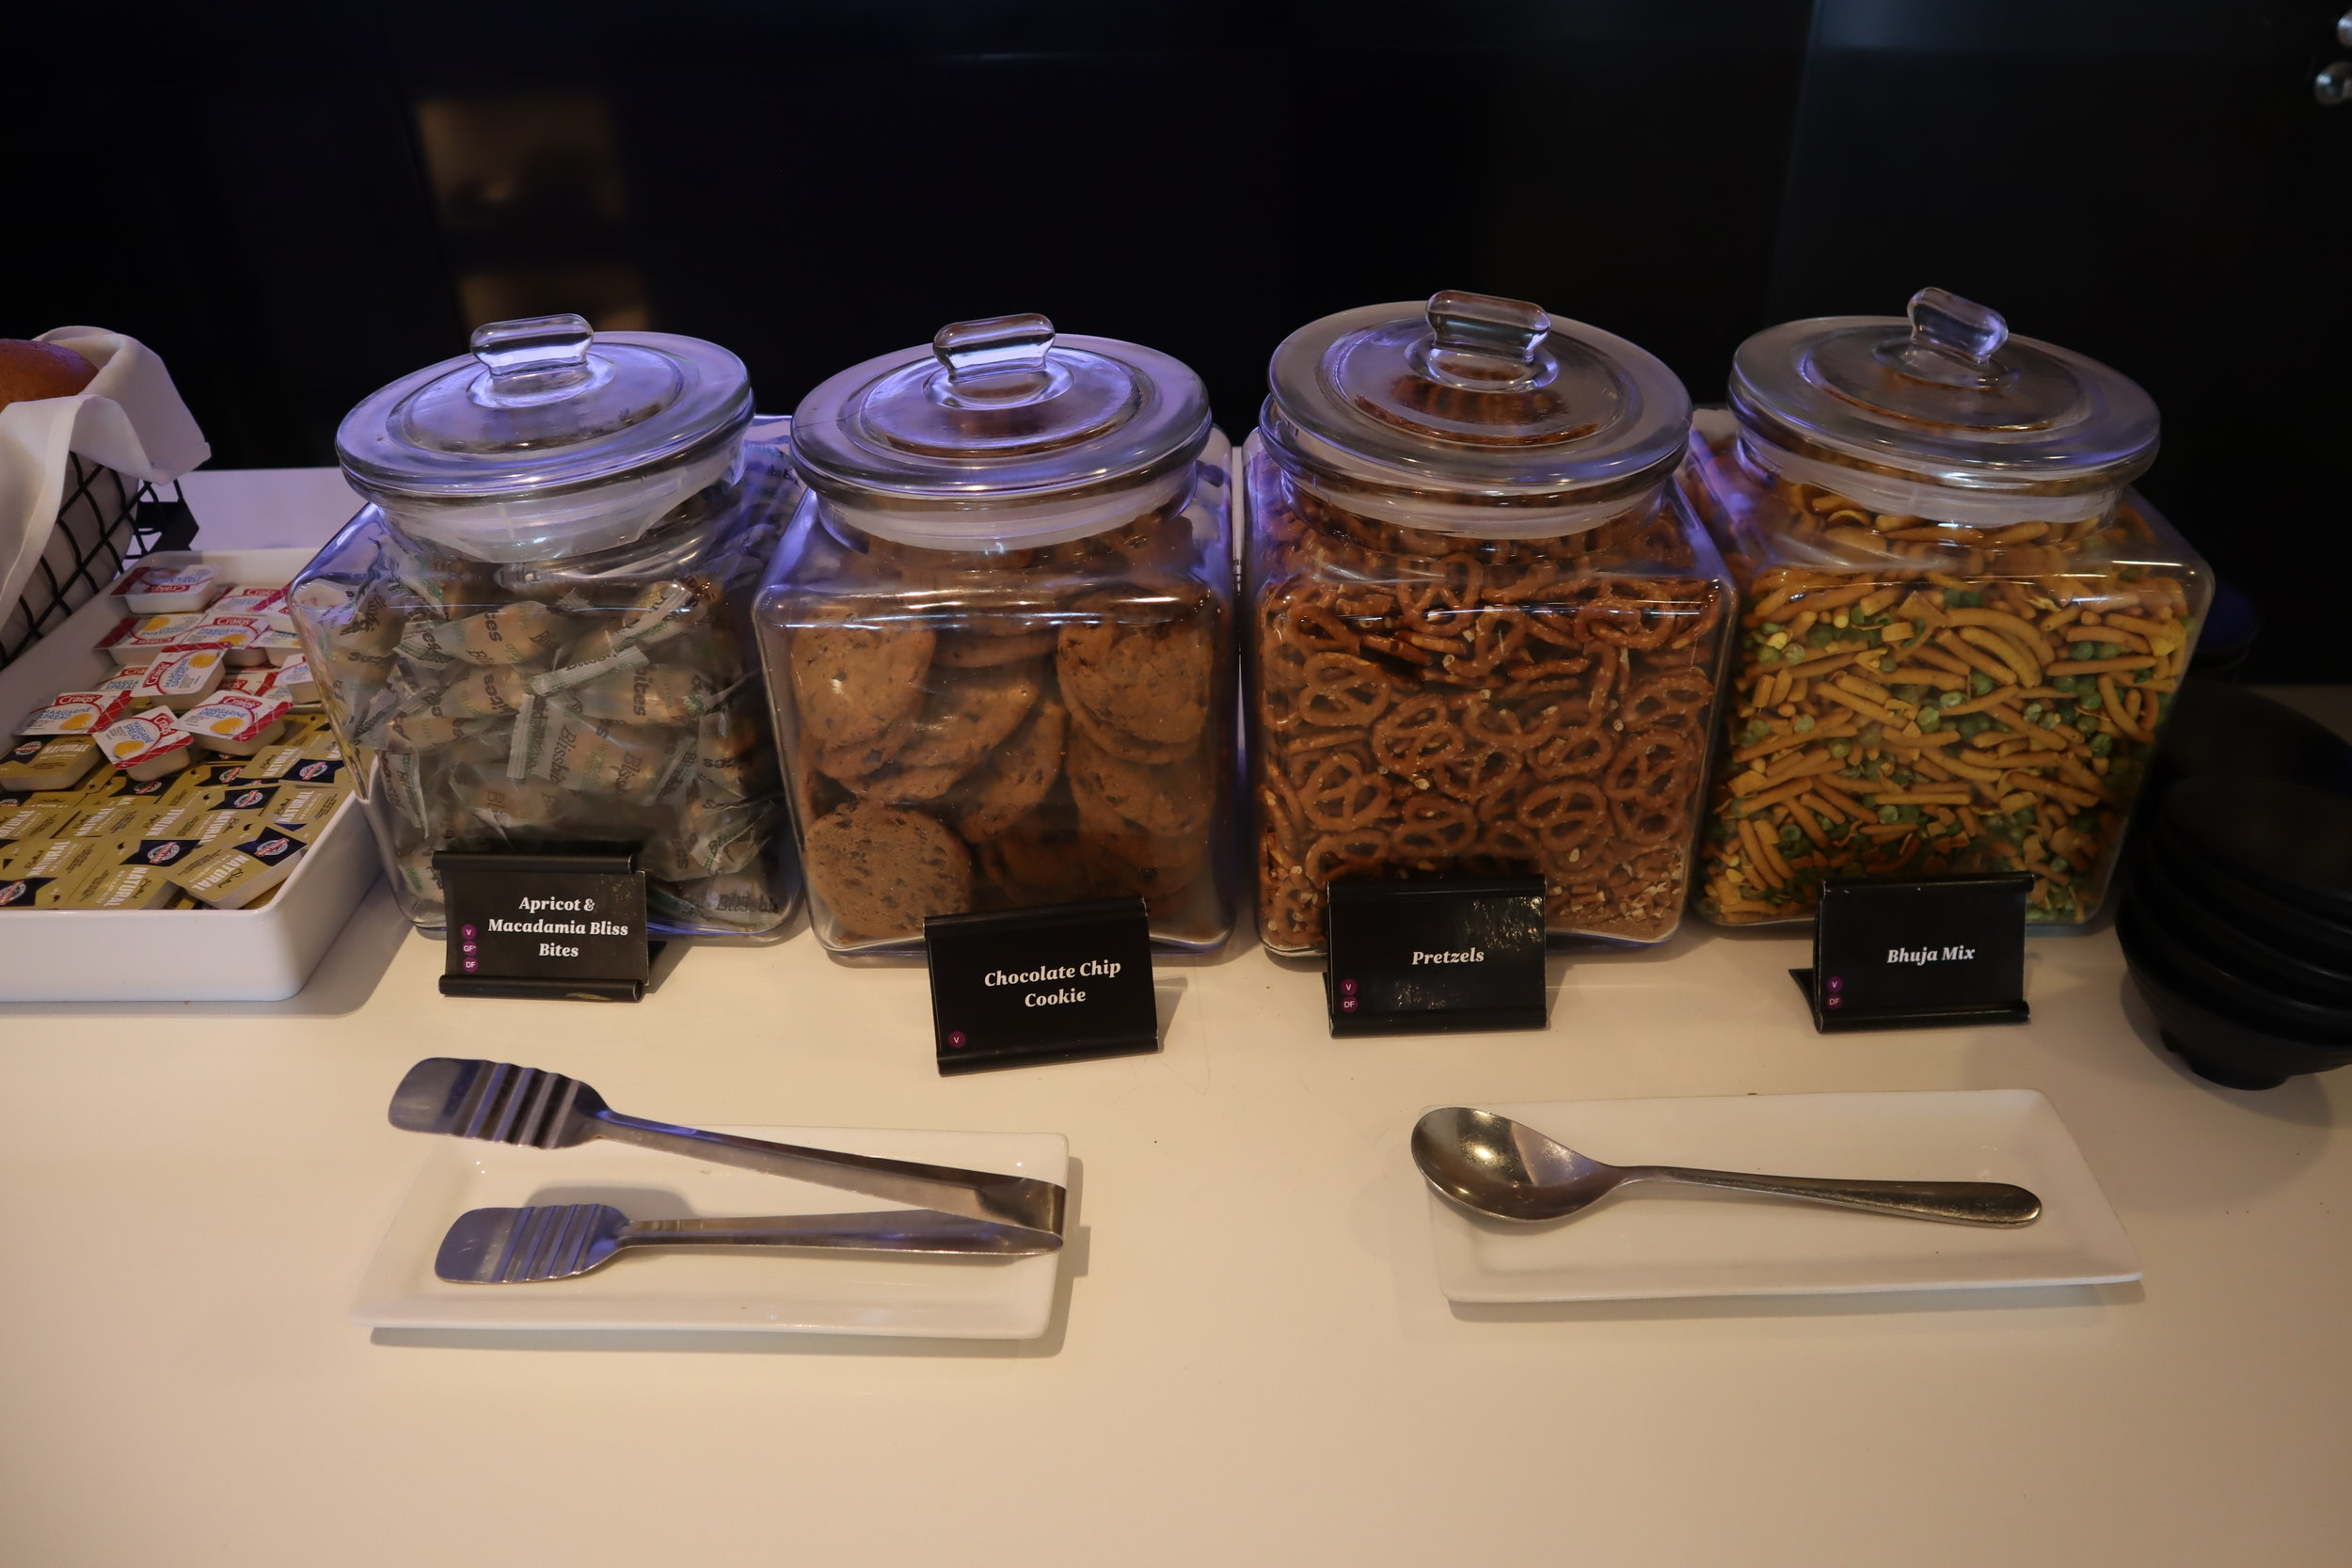 Air New Zealand Lounge Auckland – Snacks